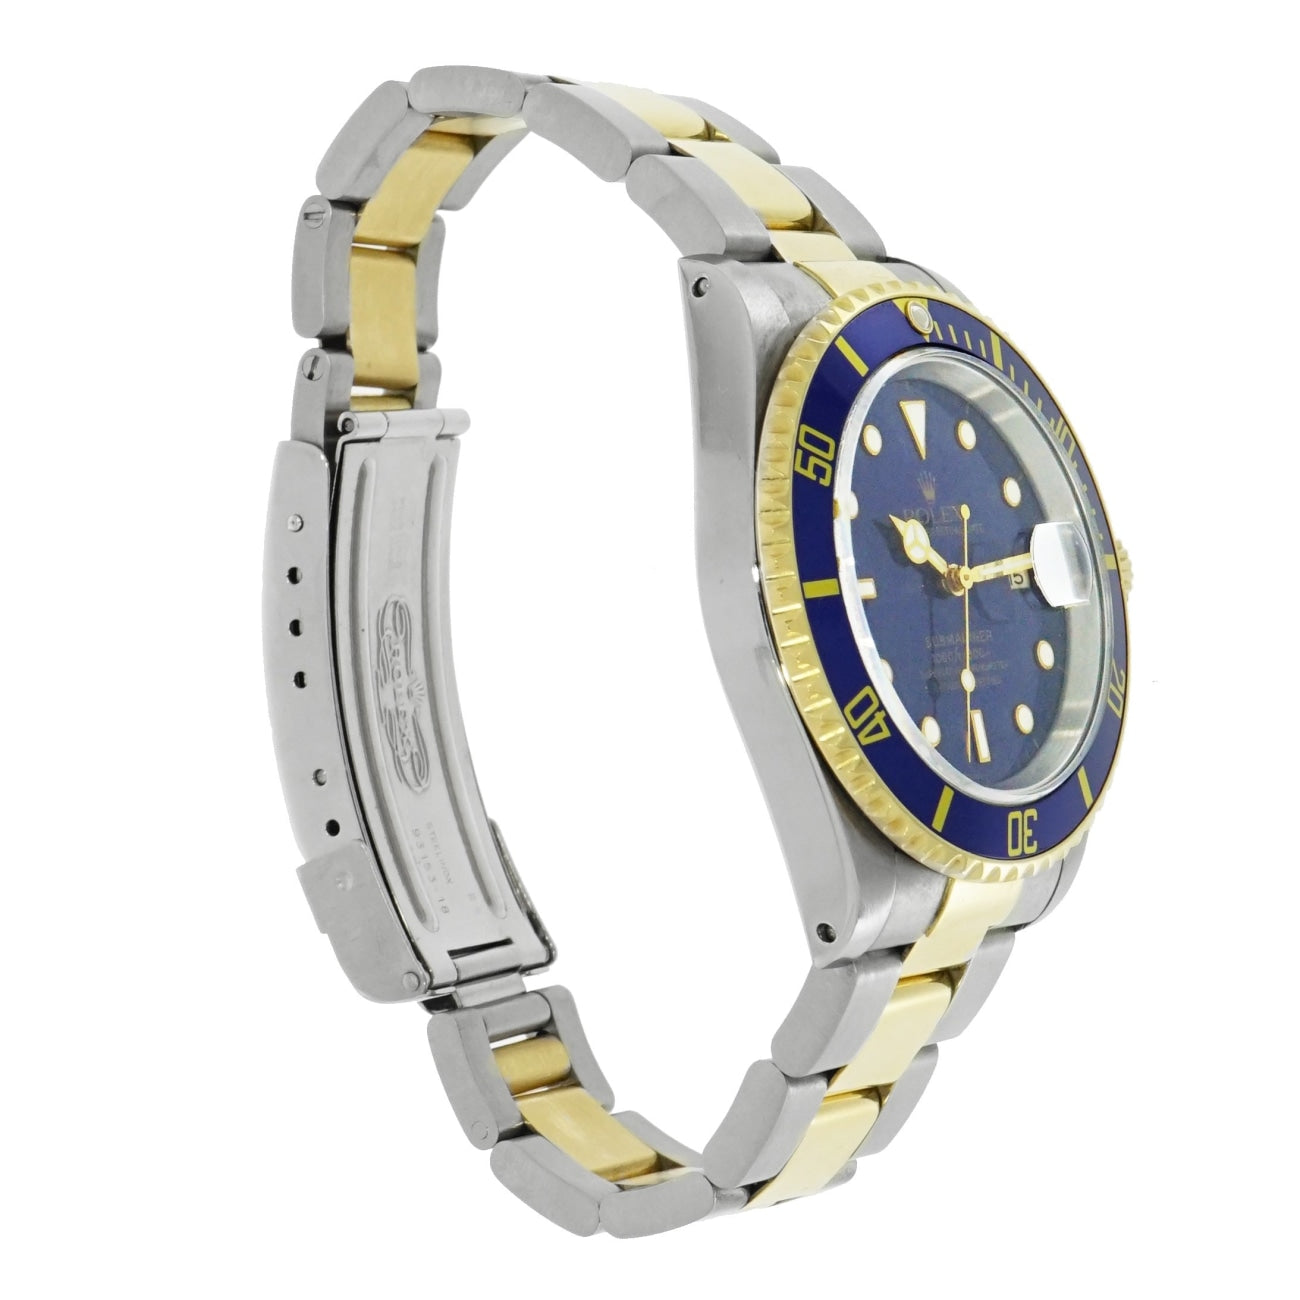 Pre-Owned Rolex Pre-Owned Watches - Submariner Blue Dial Stainless Steel | Manfredi Jewels